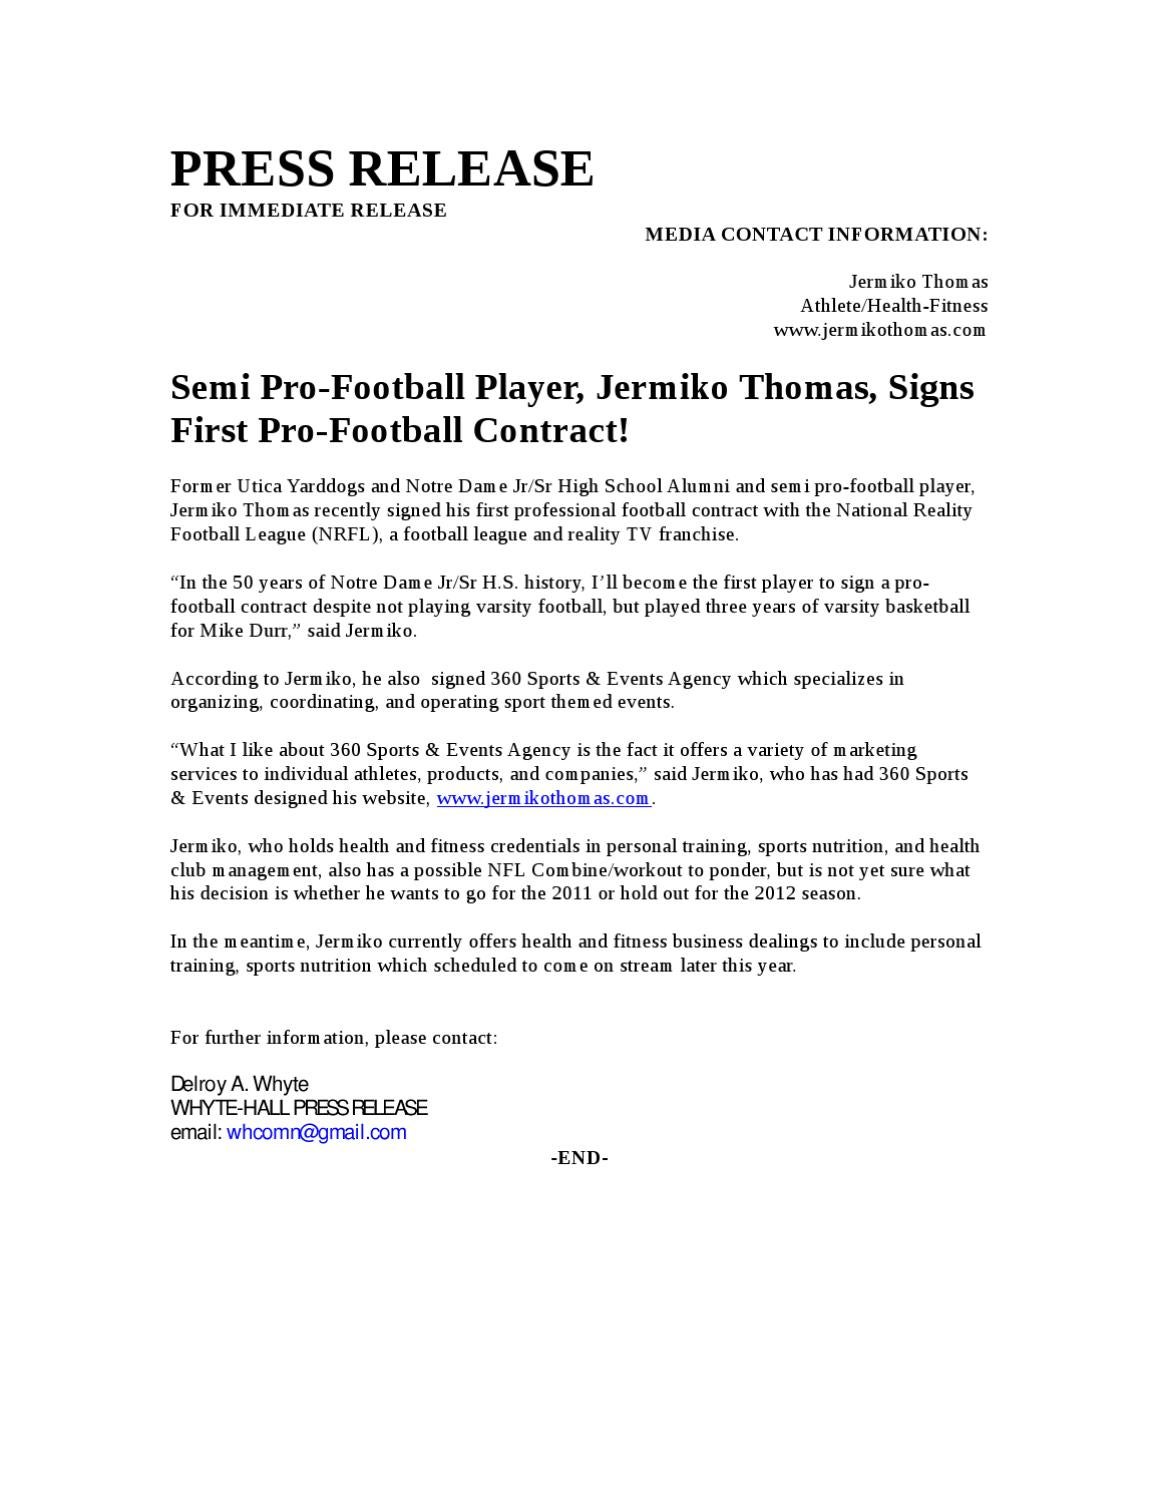 football contract template - semi pro football player signs first pro football contract